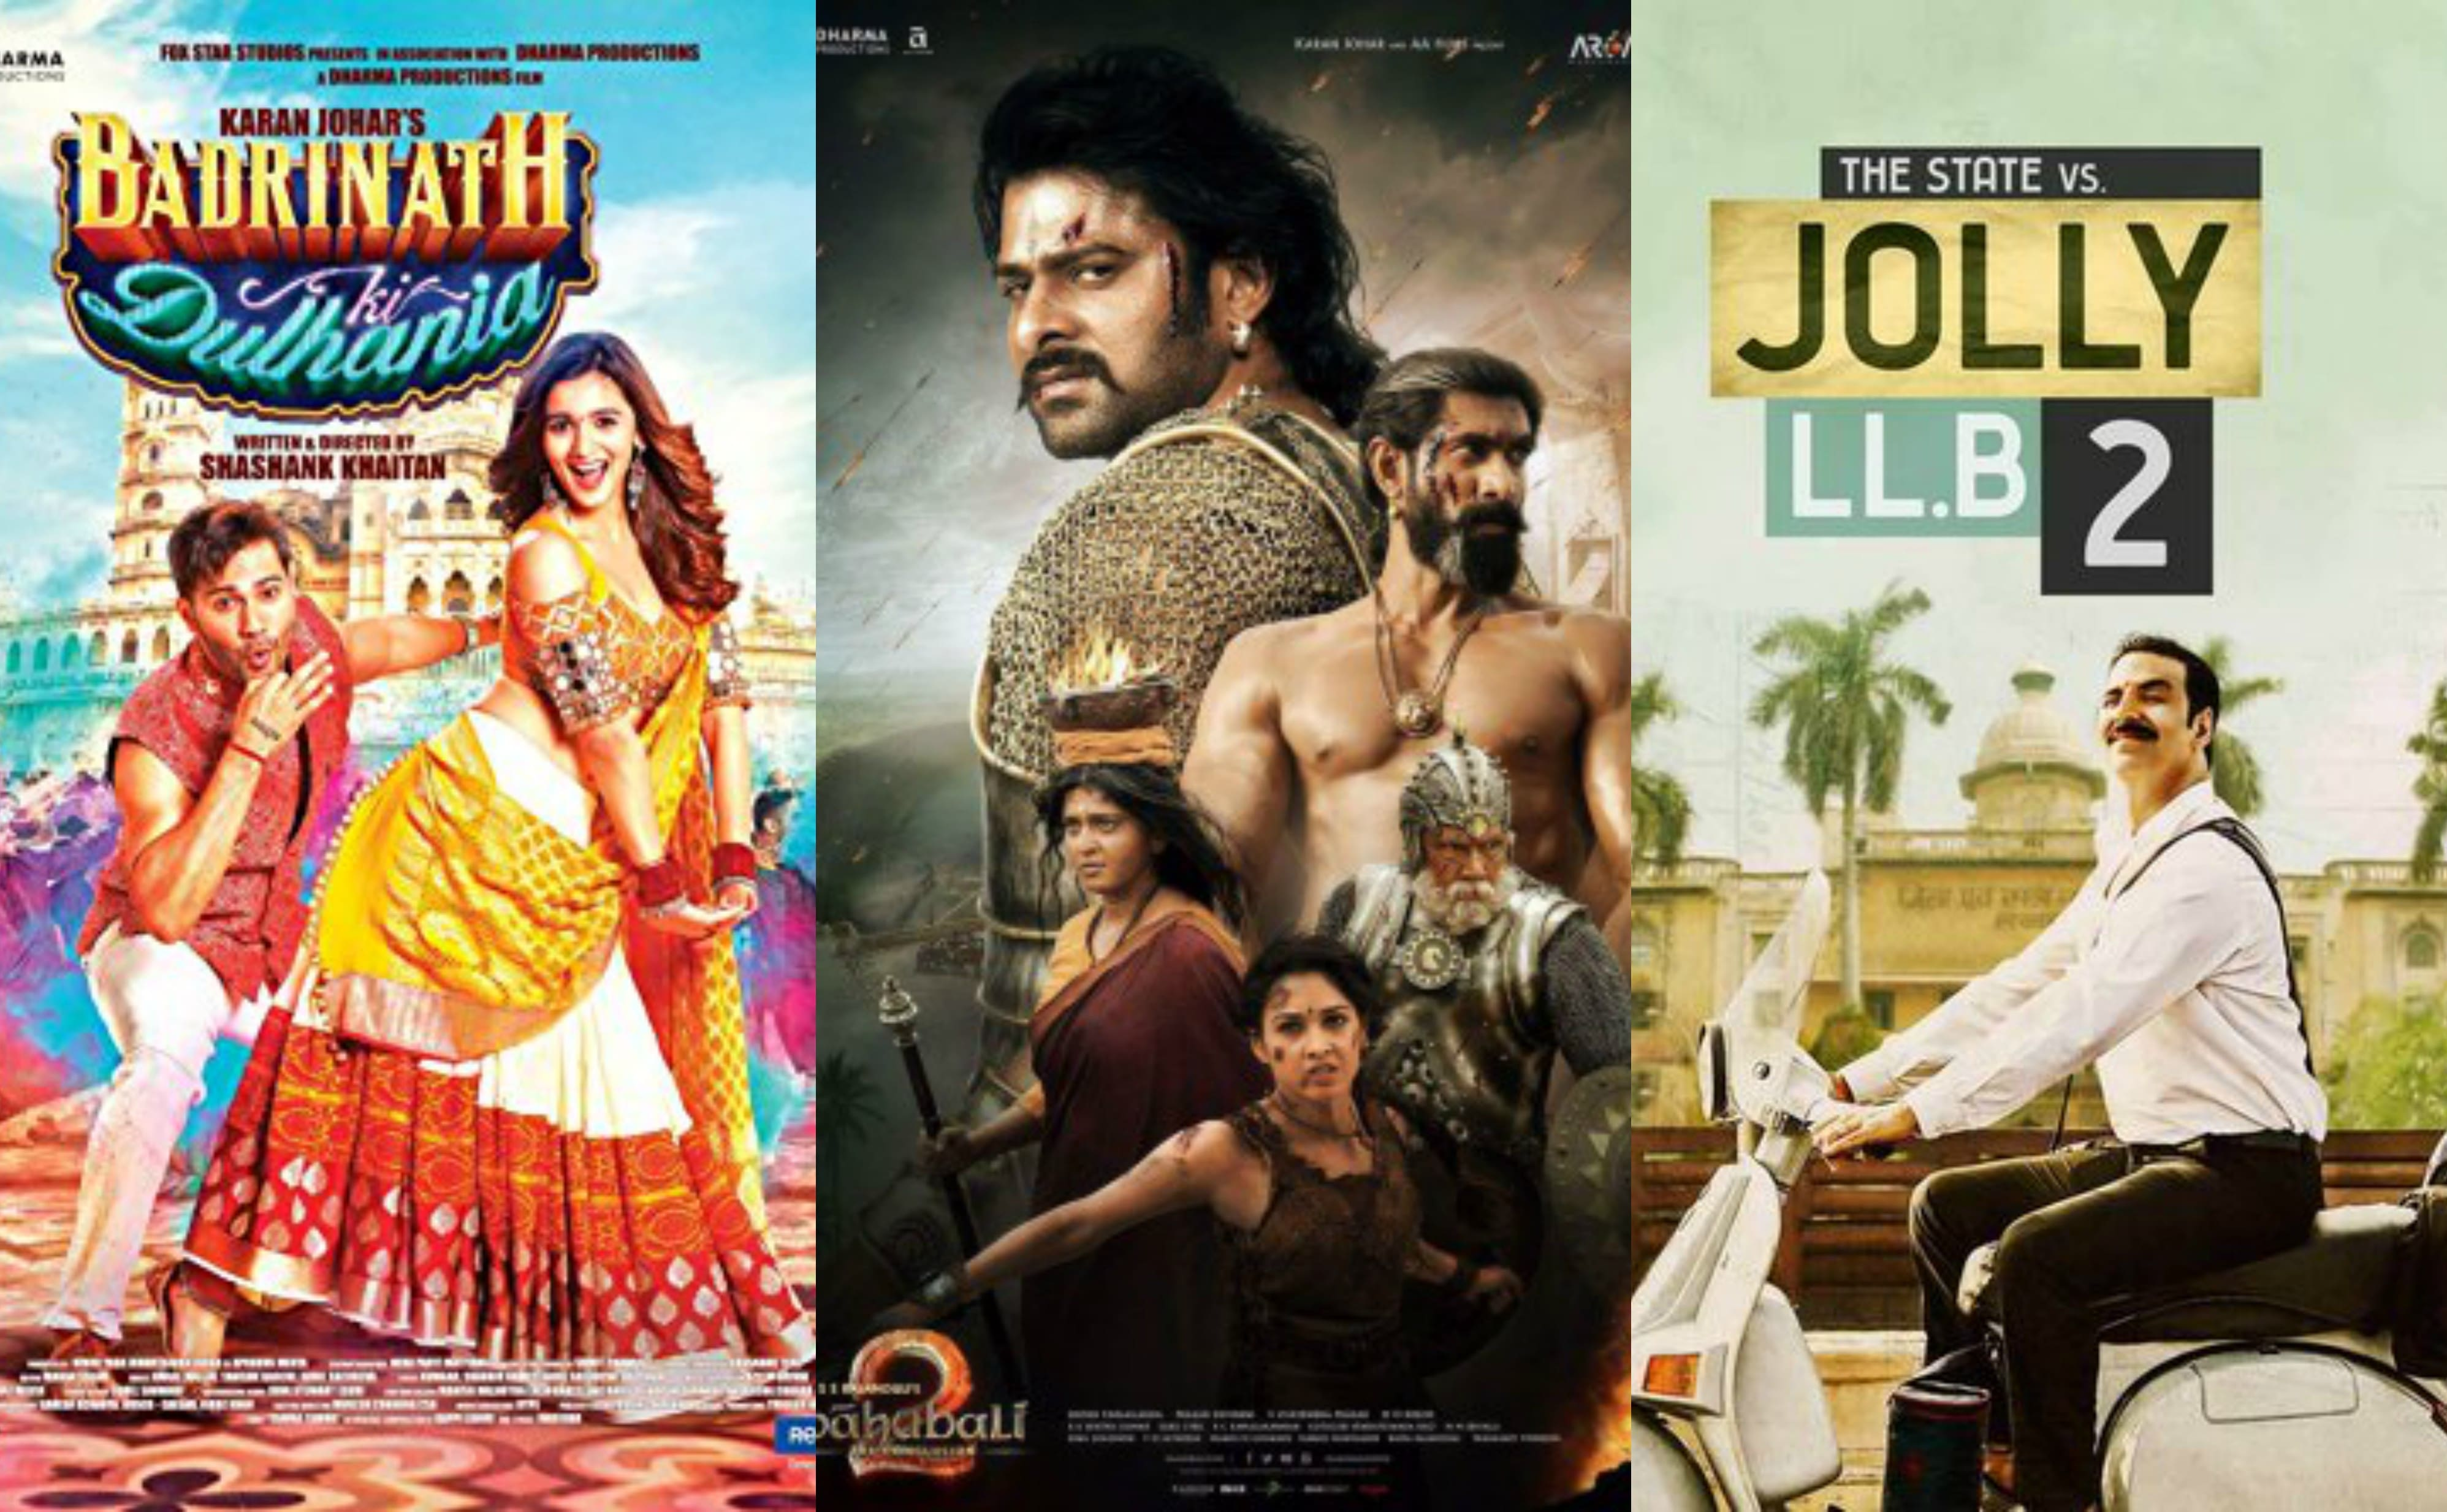 Bollywood Mantra For 2017 Now - Forget All About Egos, Stop Clashes And Focus On Entertainment